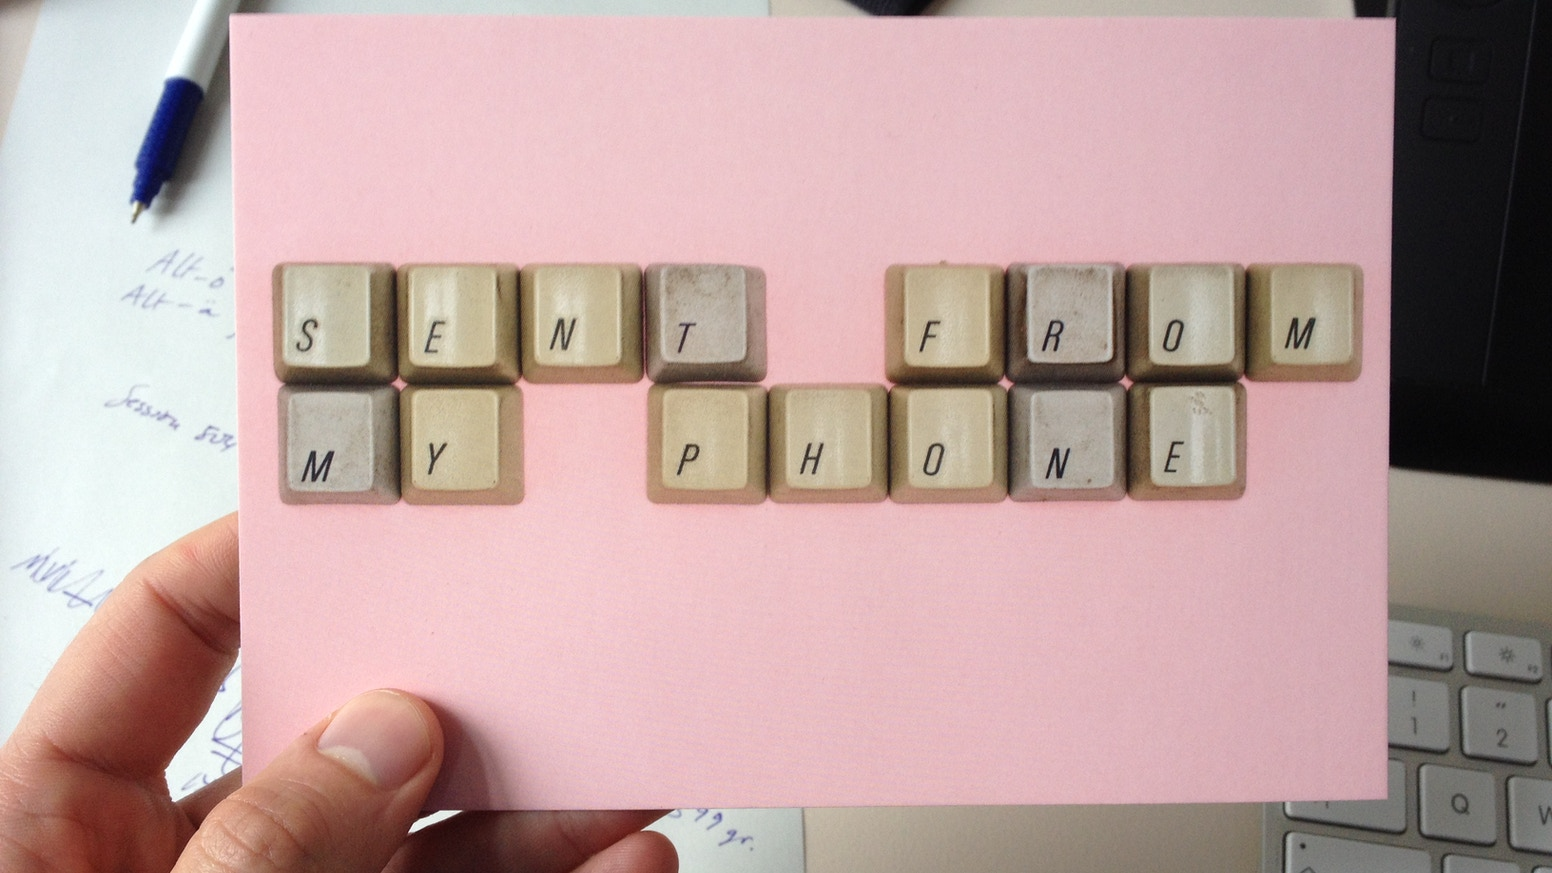 This project is about creating a set of typographic postcards made with used keyboard keys.